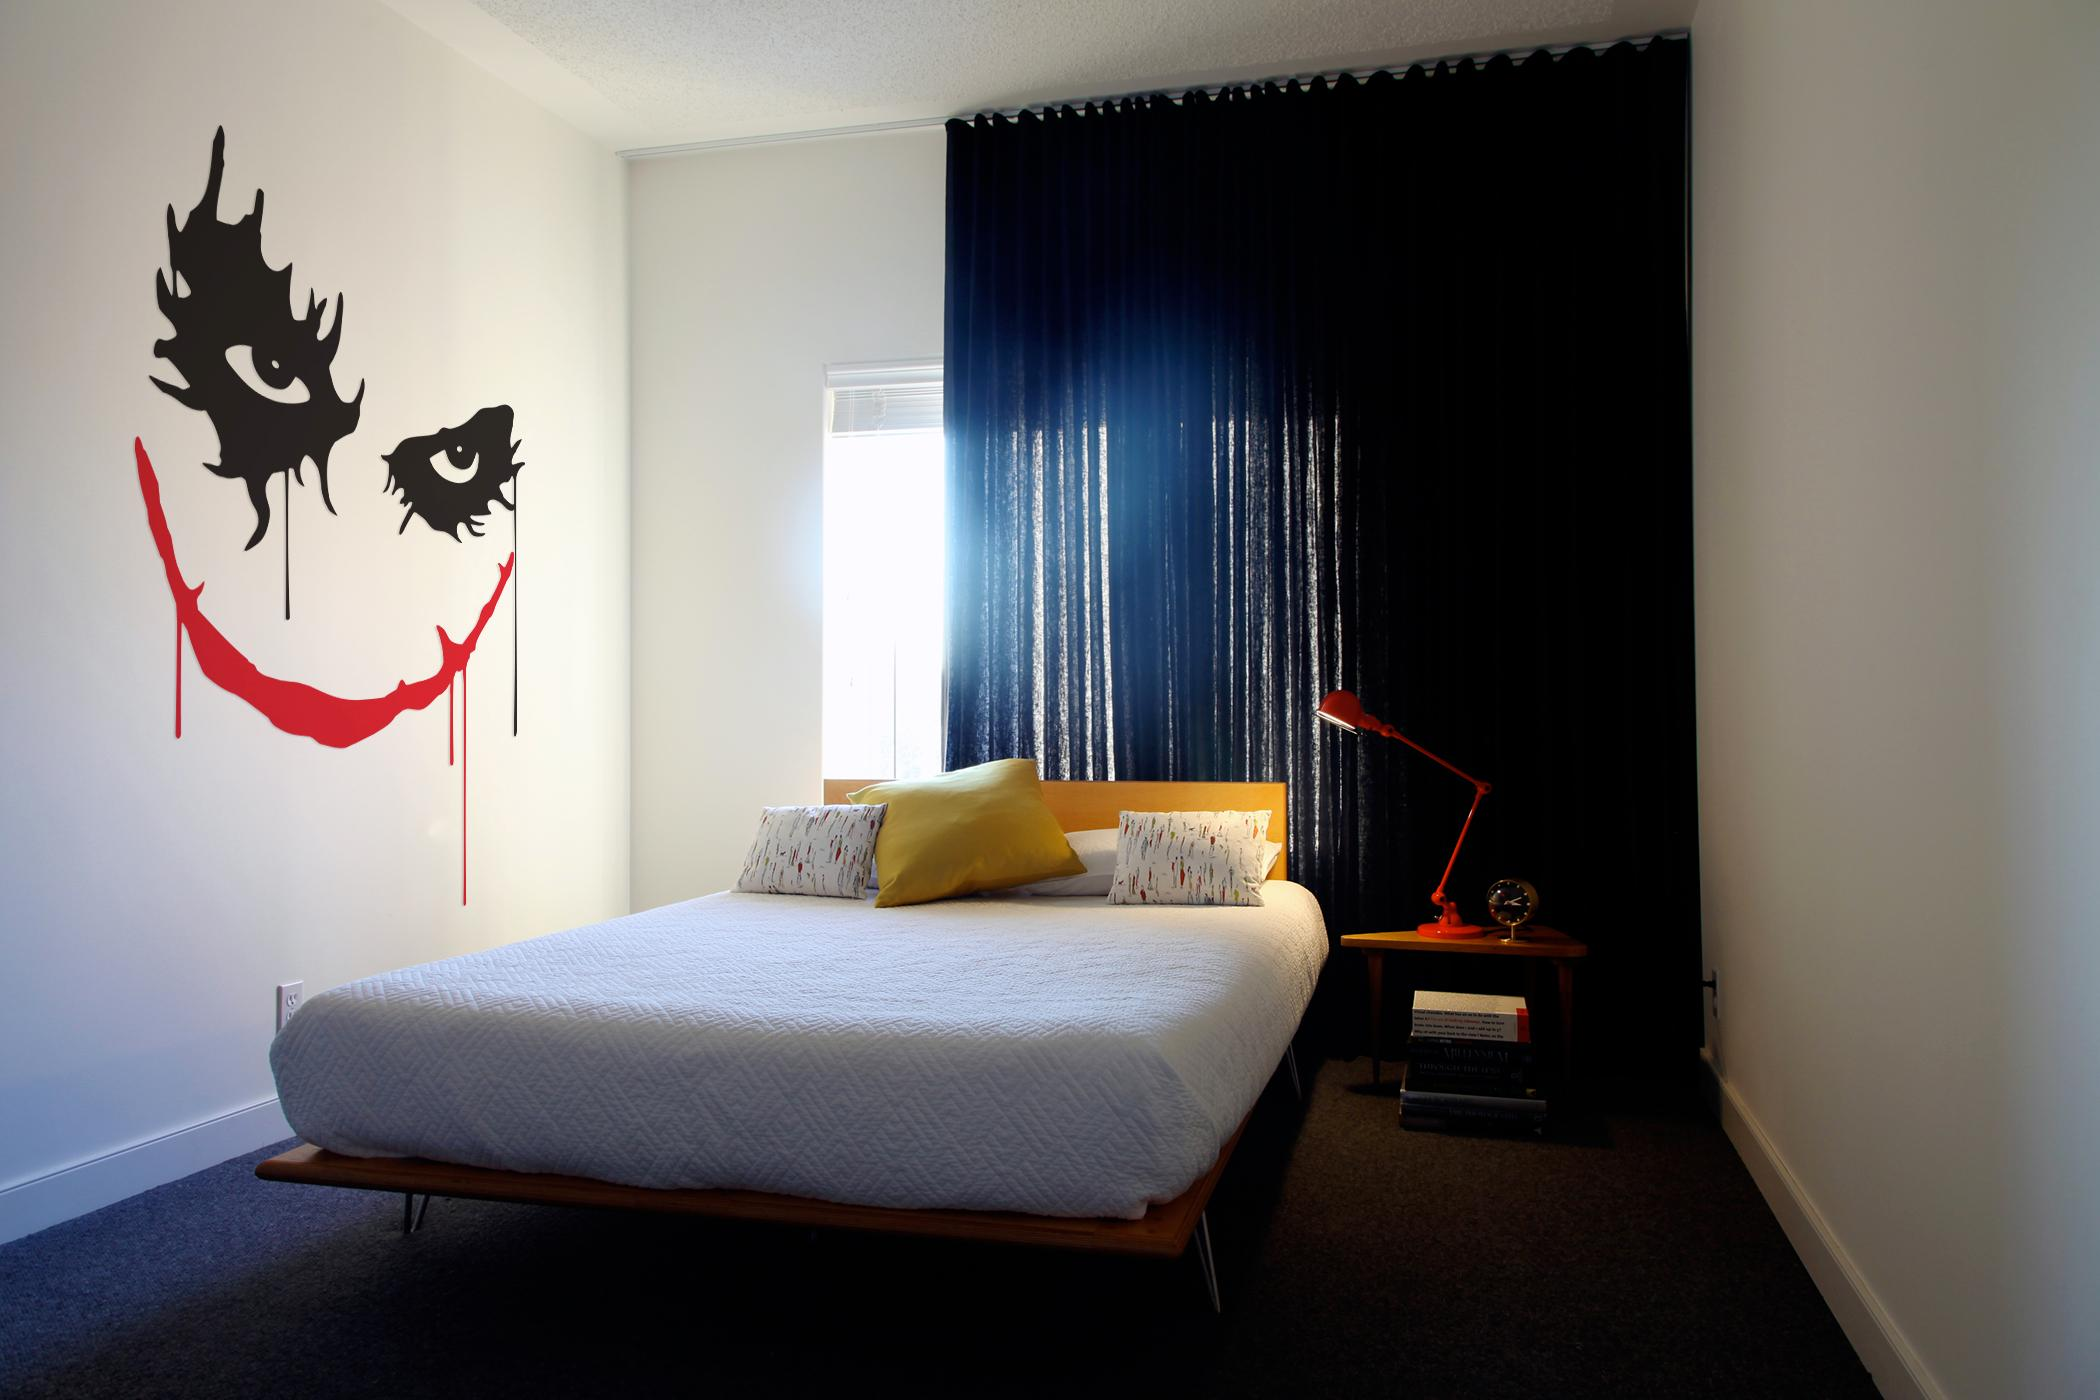 joker als wandtattoo auf wei er wand bett fototape. Black Bedroom Furniture Sets. Home Design Ideas